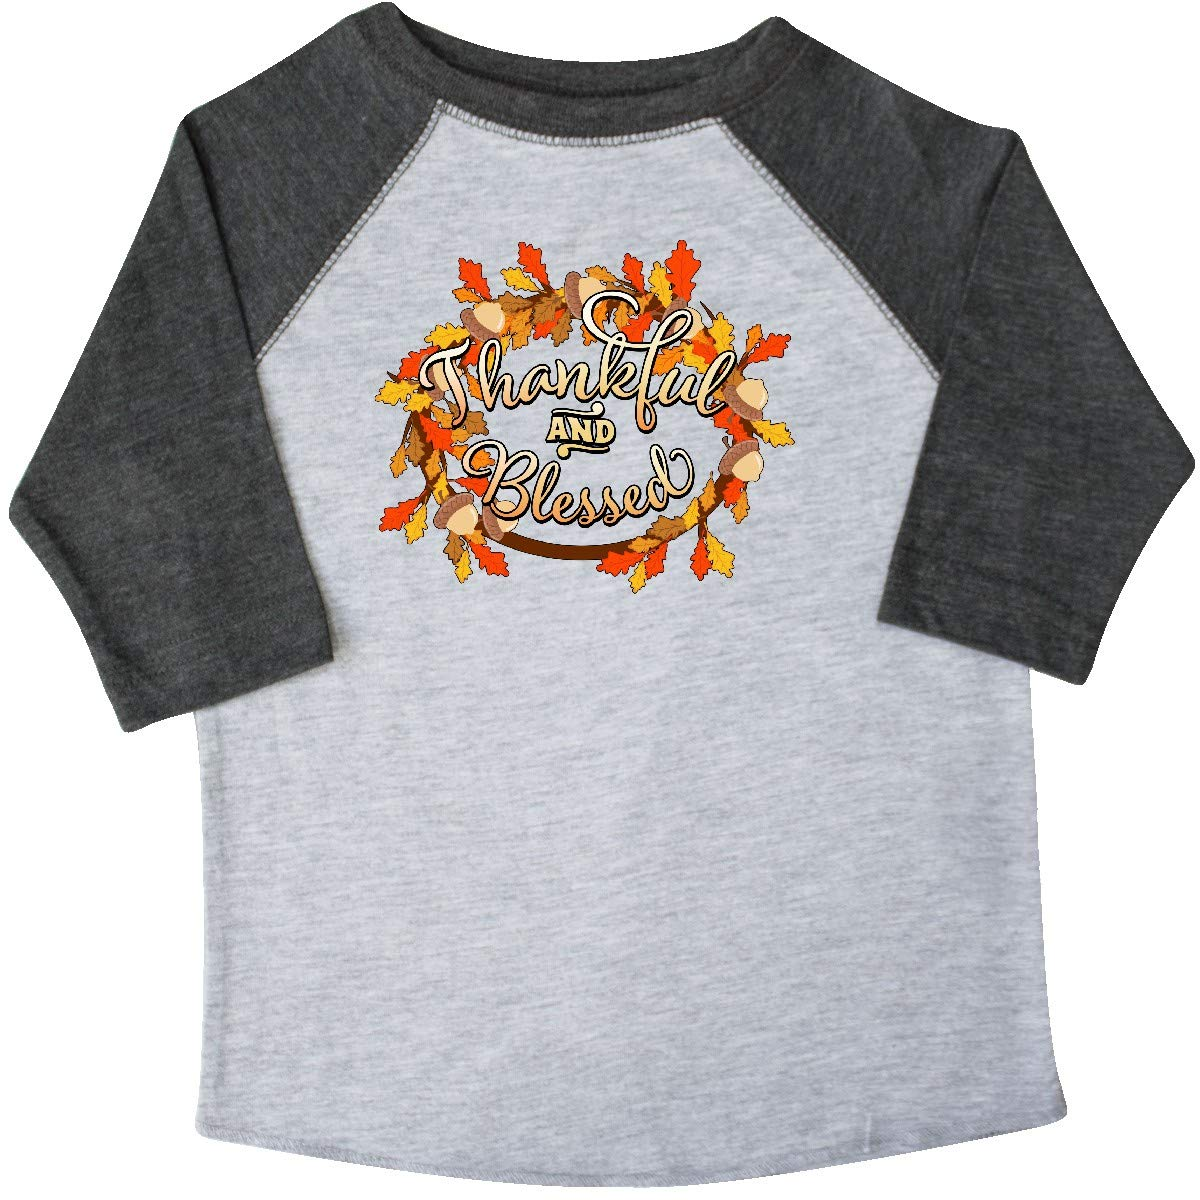 inktastic Thankful and Blessed Toddler T-Shirt 4T 3/4 Sleeve Heather Smoke by inktastic